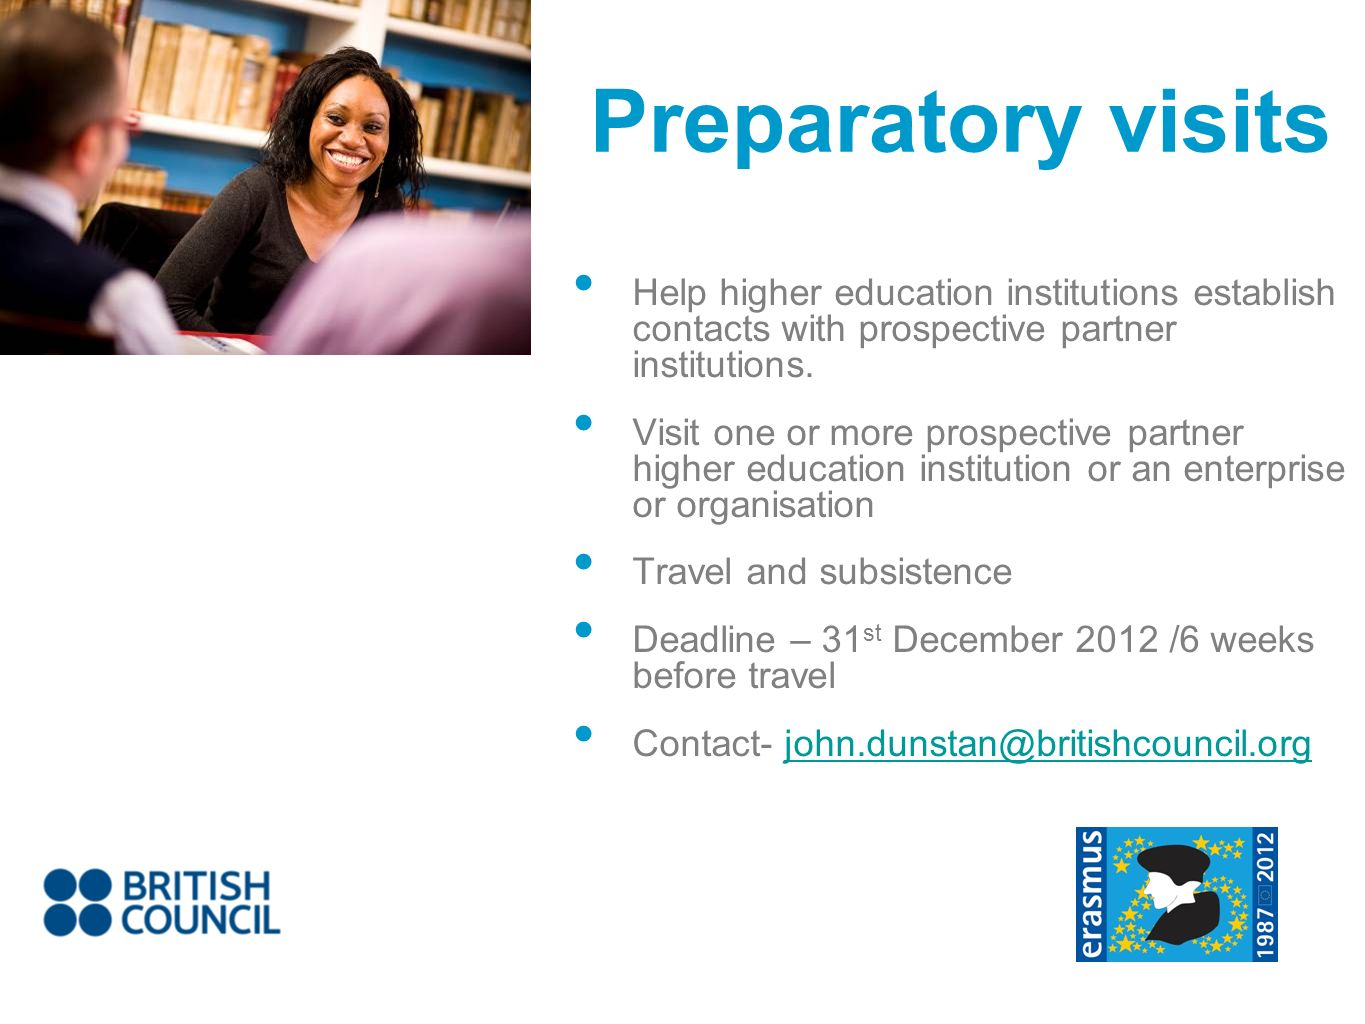 Help higher education institutions establish contacts with prospective partner institutions. Visit one or more prospective partner higher education in